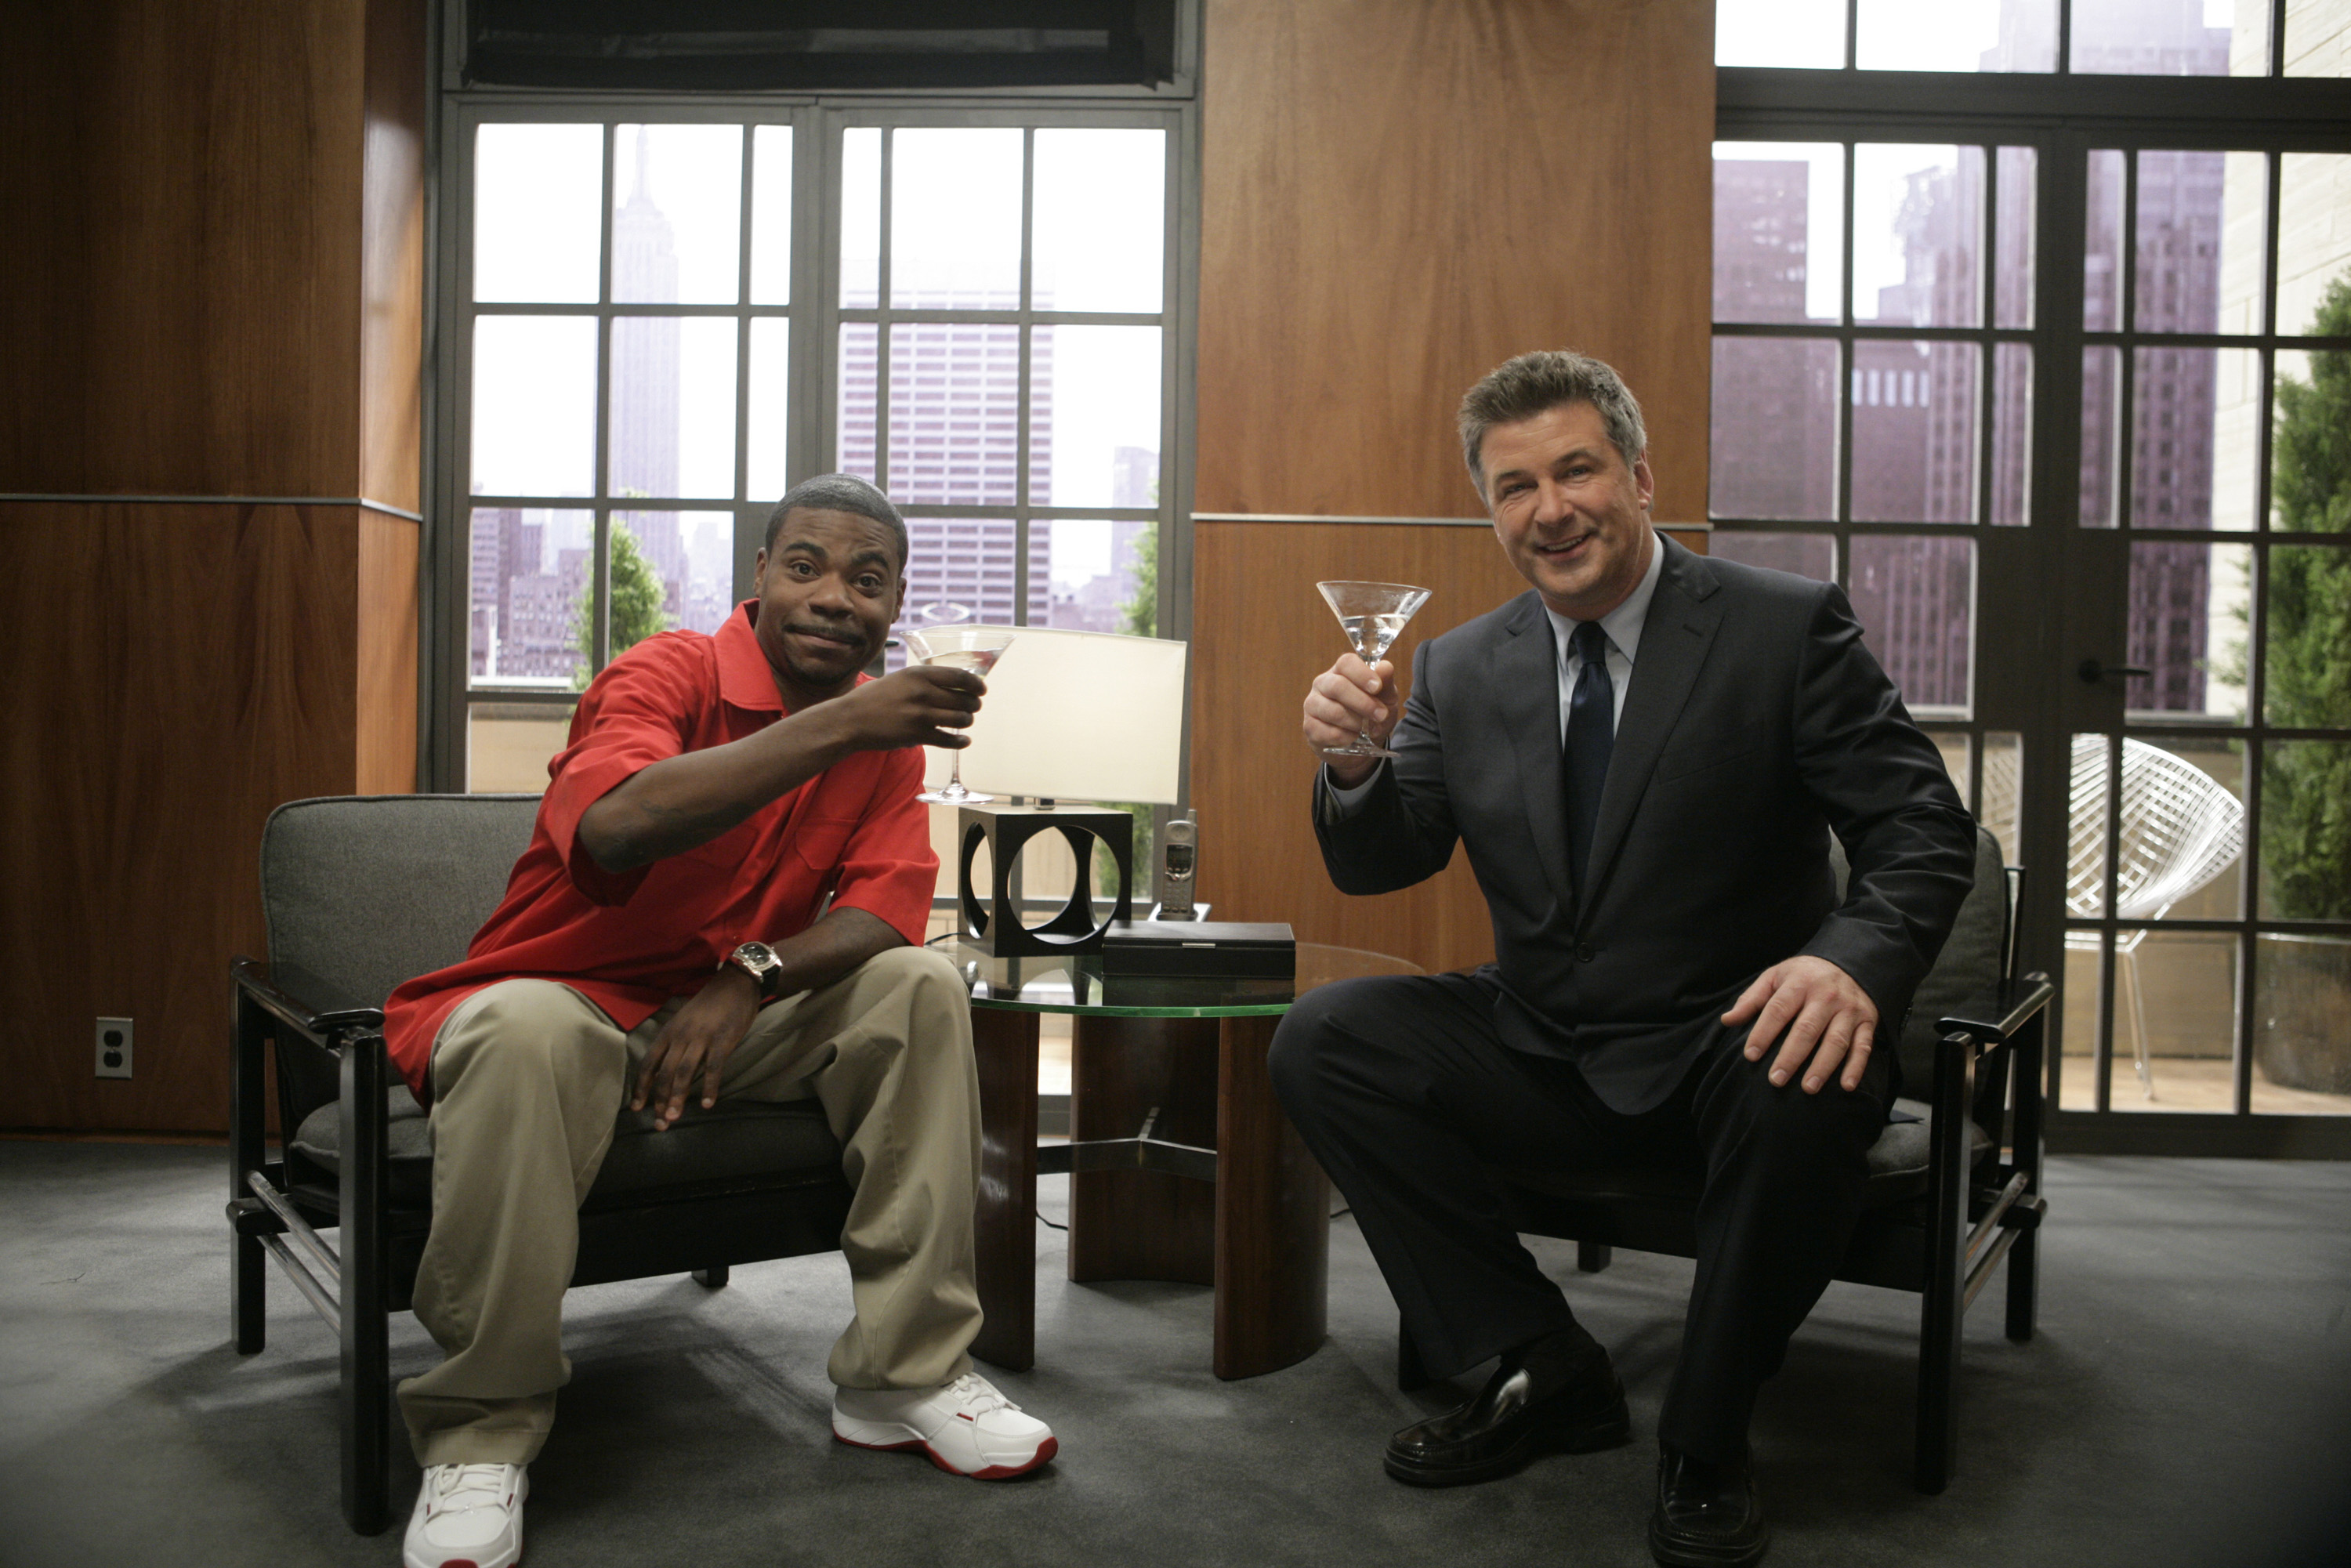 We Almost Got a '30 Rock' Spinoff About Jack Donaghy Becoming Mayor - VICE